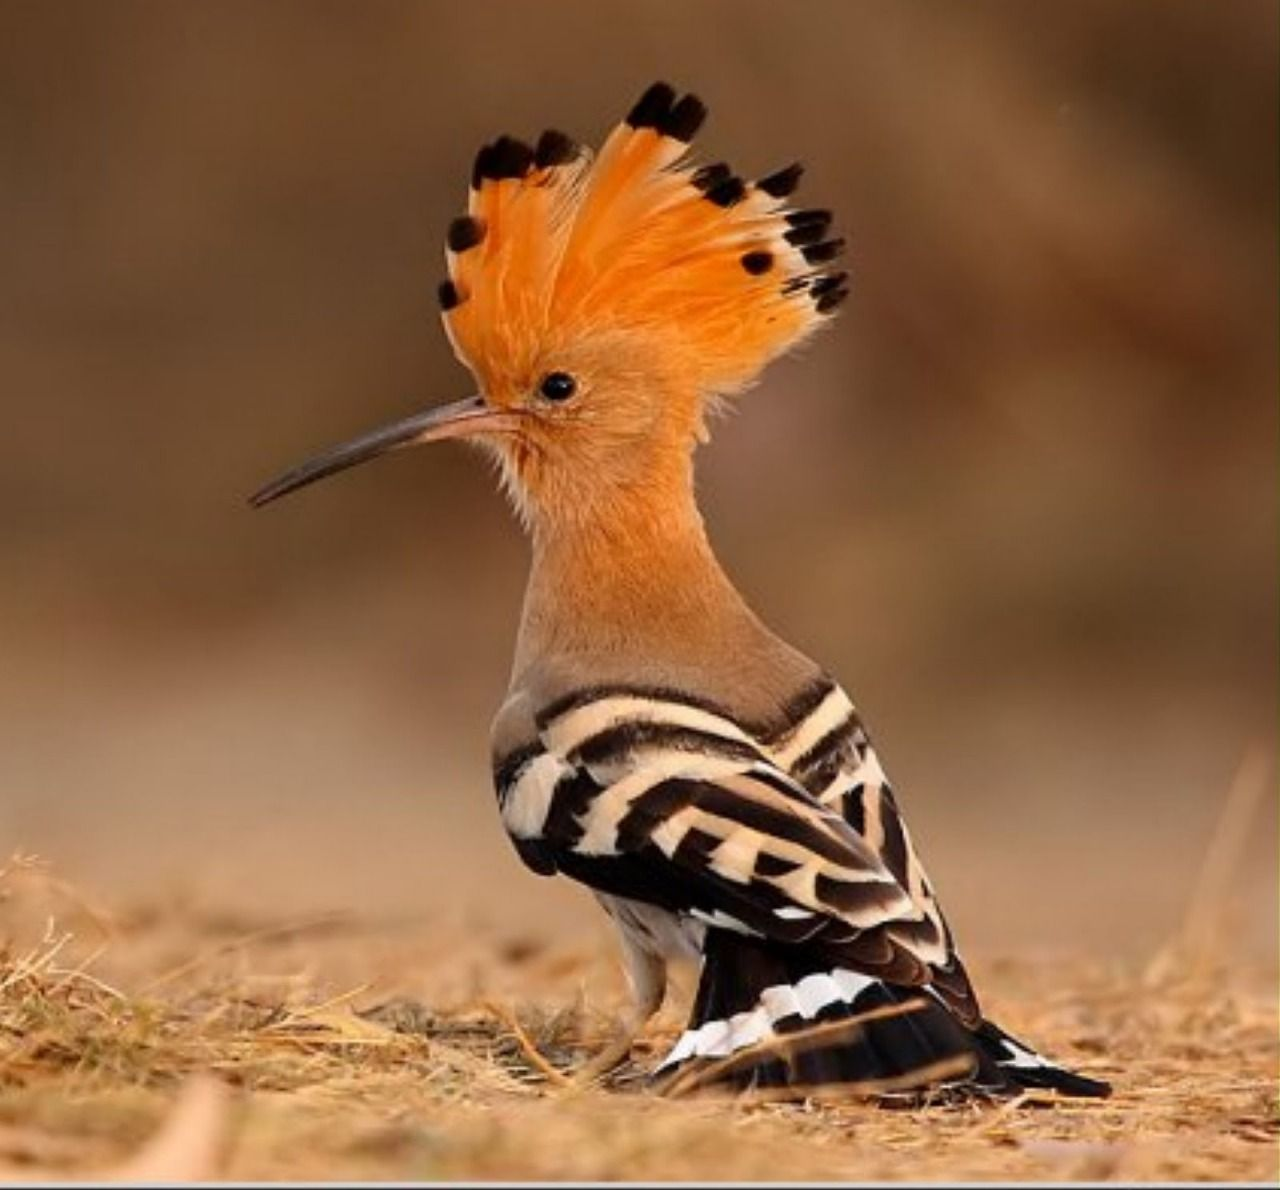 The hoopoe bird lives in Eurasia and is not seen in the county, but The Wisdom Bird book in our library tells the folklore story of how it got its golden crown. It is the national bird of Israel. All Gods Creatures, Cute Creatures, Beautiful Creatures, Exotic Birds, Colorful Birds, Love Birds, Beautiful Birds, Hoopoe Bird, South African Birds